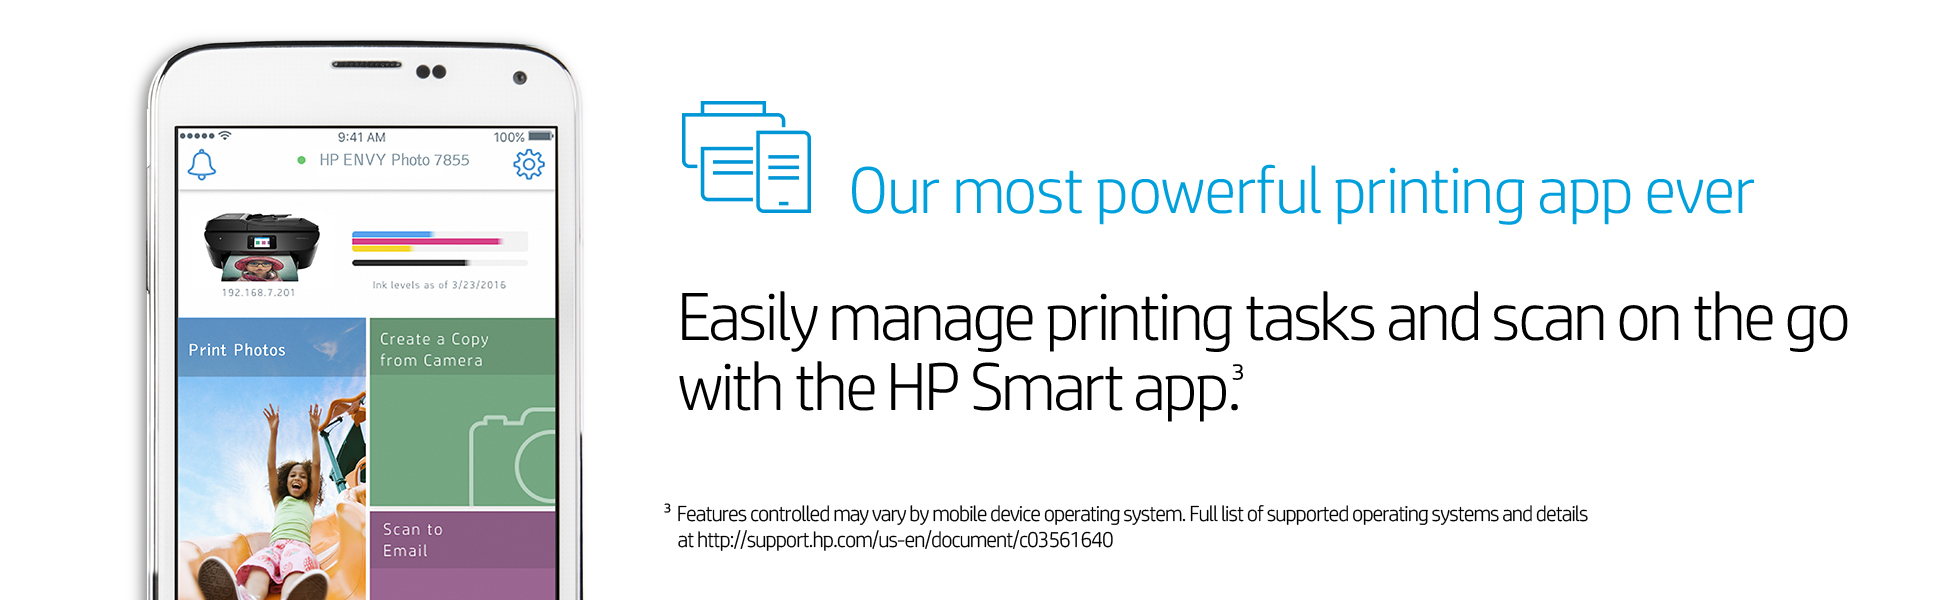 Hp Envy Photo 7855 All In One Photo Printer With Wireless And Mobile